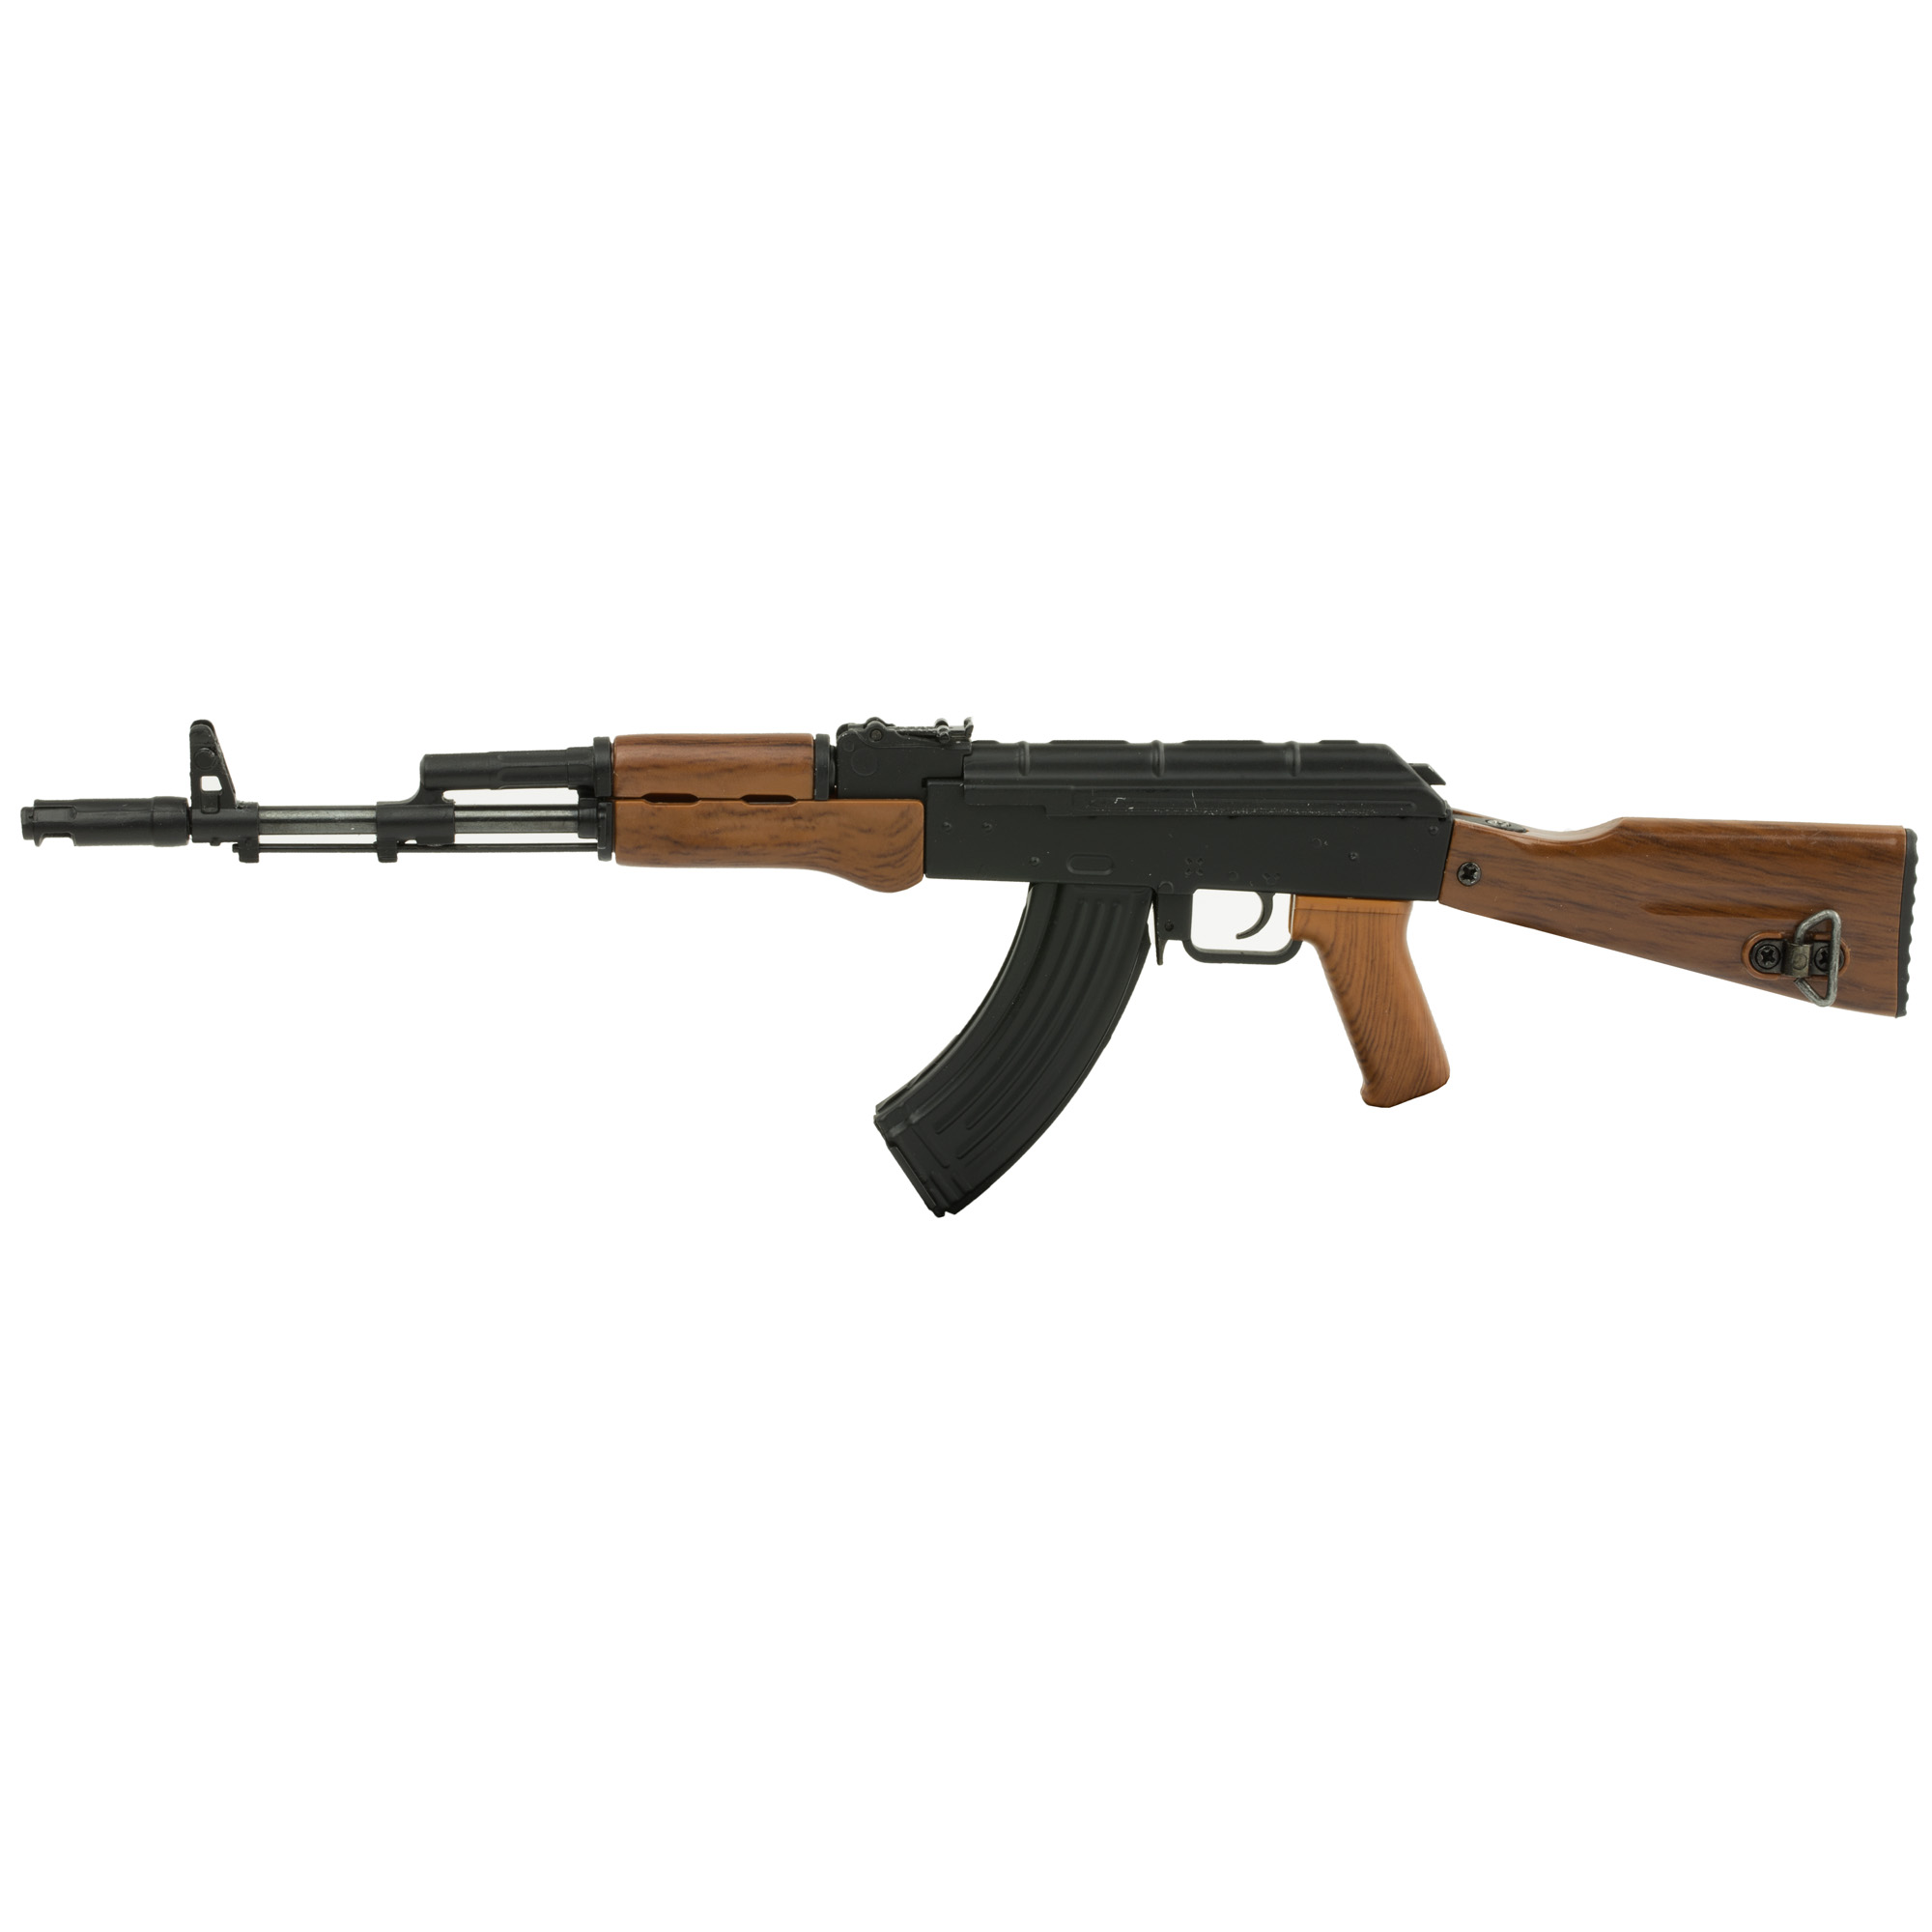 """Advanced Technology AK-47 Non-Firing Mini Replica"""" 1/3 Scale"""" Functioning Features Include: Charge Handle"""" Removable Dust Cover"""" Trigger"""" Firing Modes"""" Fixed Stock"""" Adjustable Sights"""" Removable Mag with Three Brass Rounds"""" Removable Cleaning Rod and Mag Release Button."""